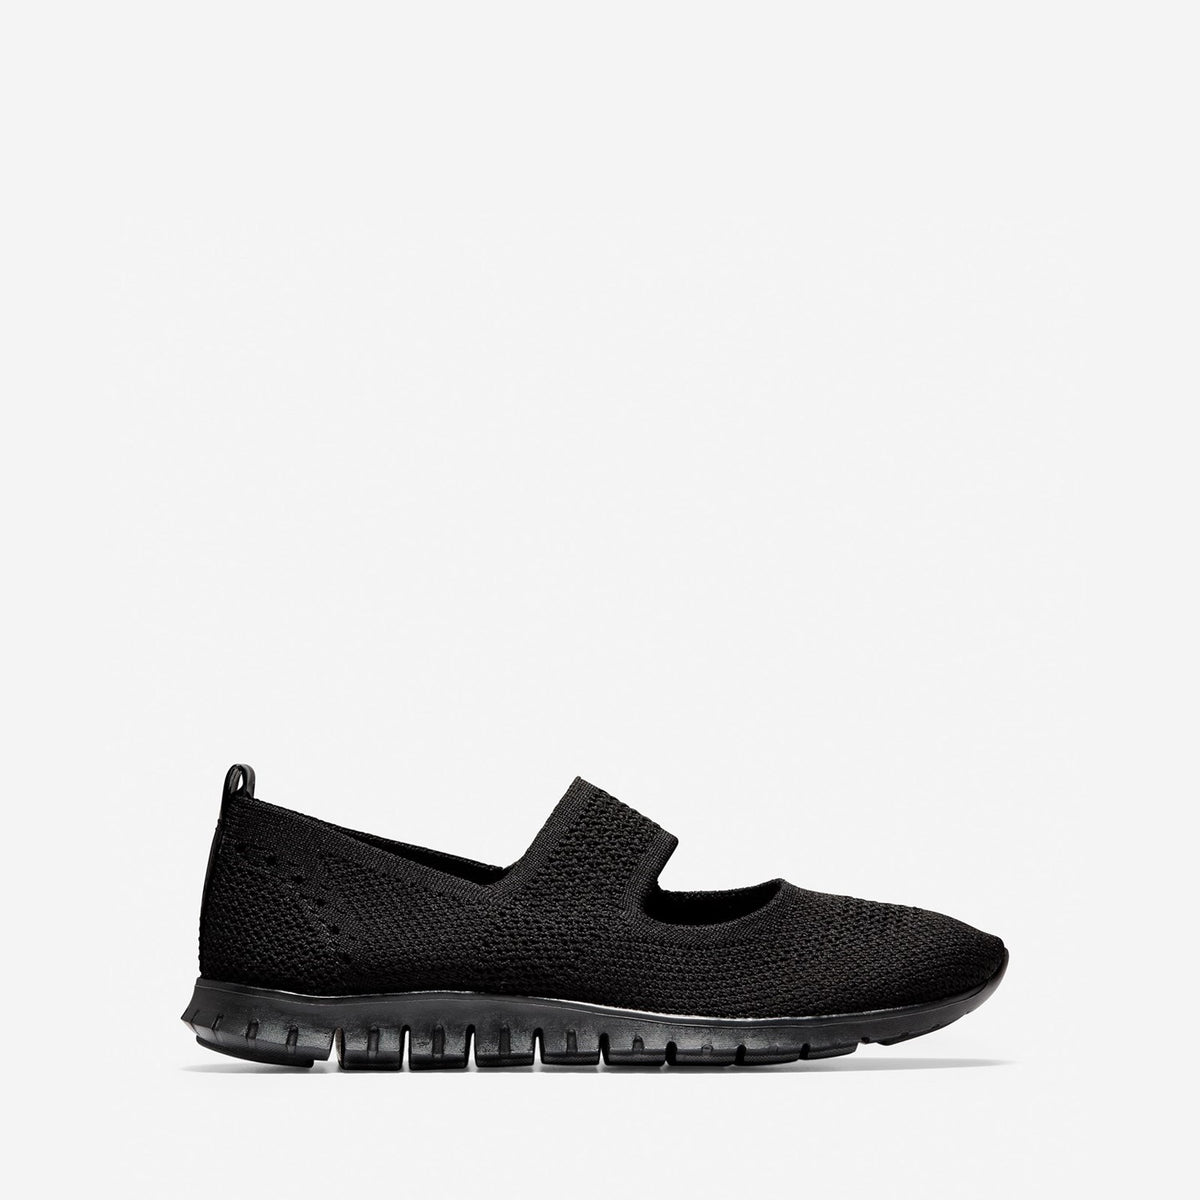 Women's ZERØGRAND Stitchlite Slip On Shoe Black Knit/Black